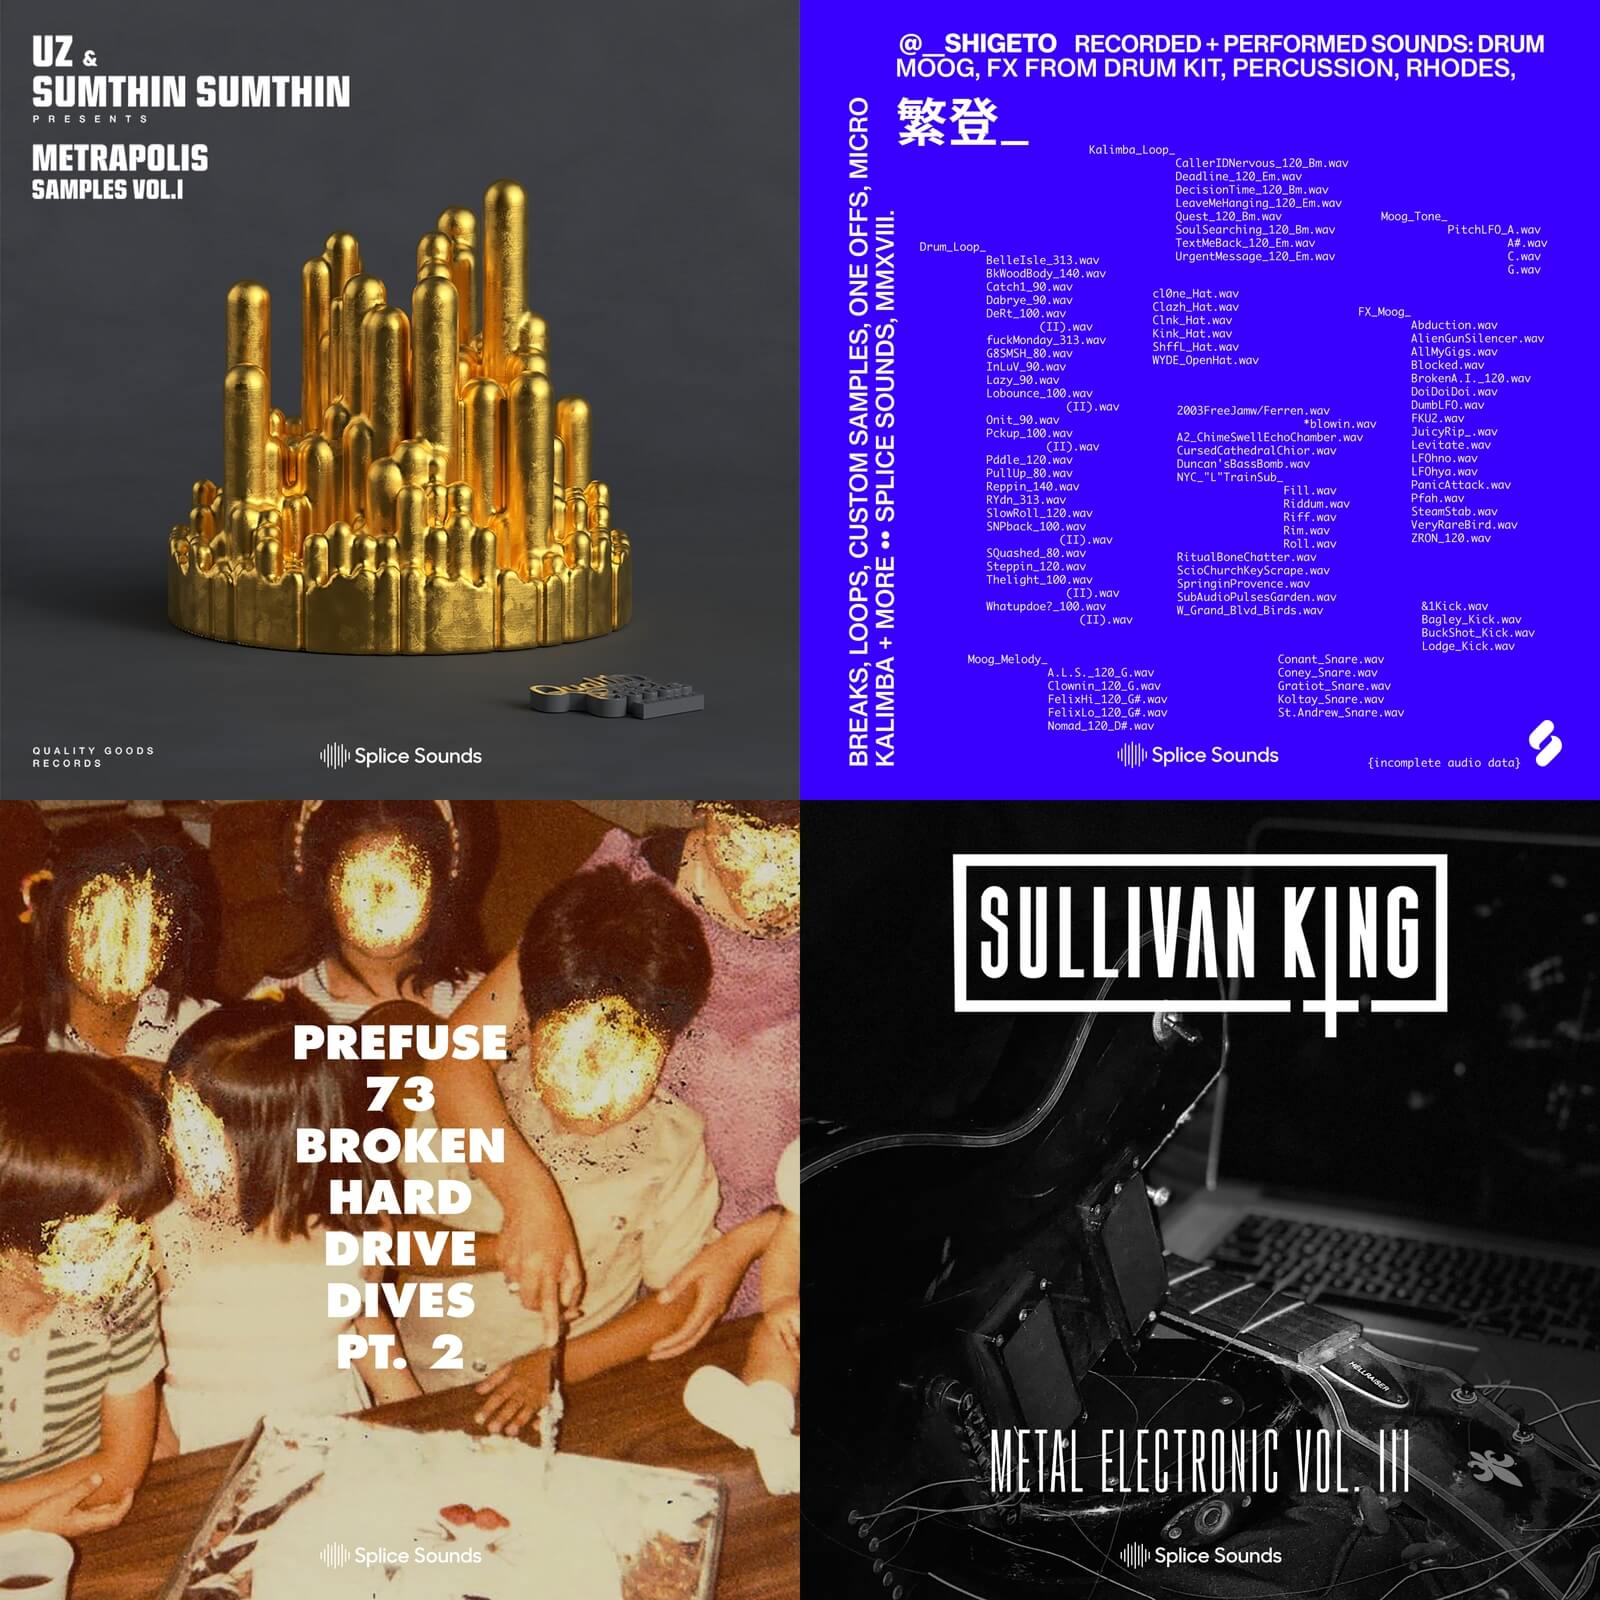 New sounds from UZ & Sumthin Sumthin, Shigeto, Prefuse 73 and